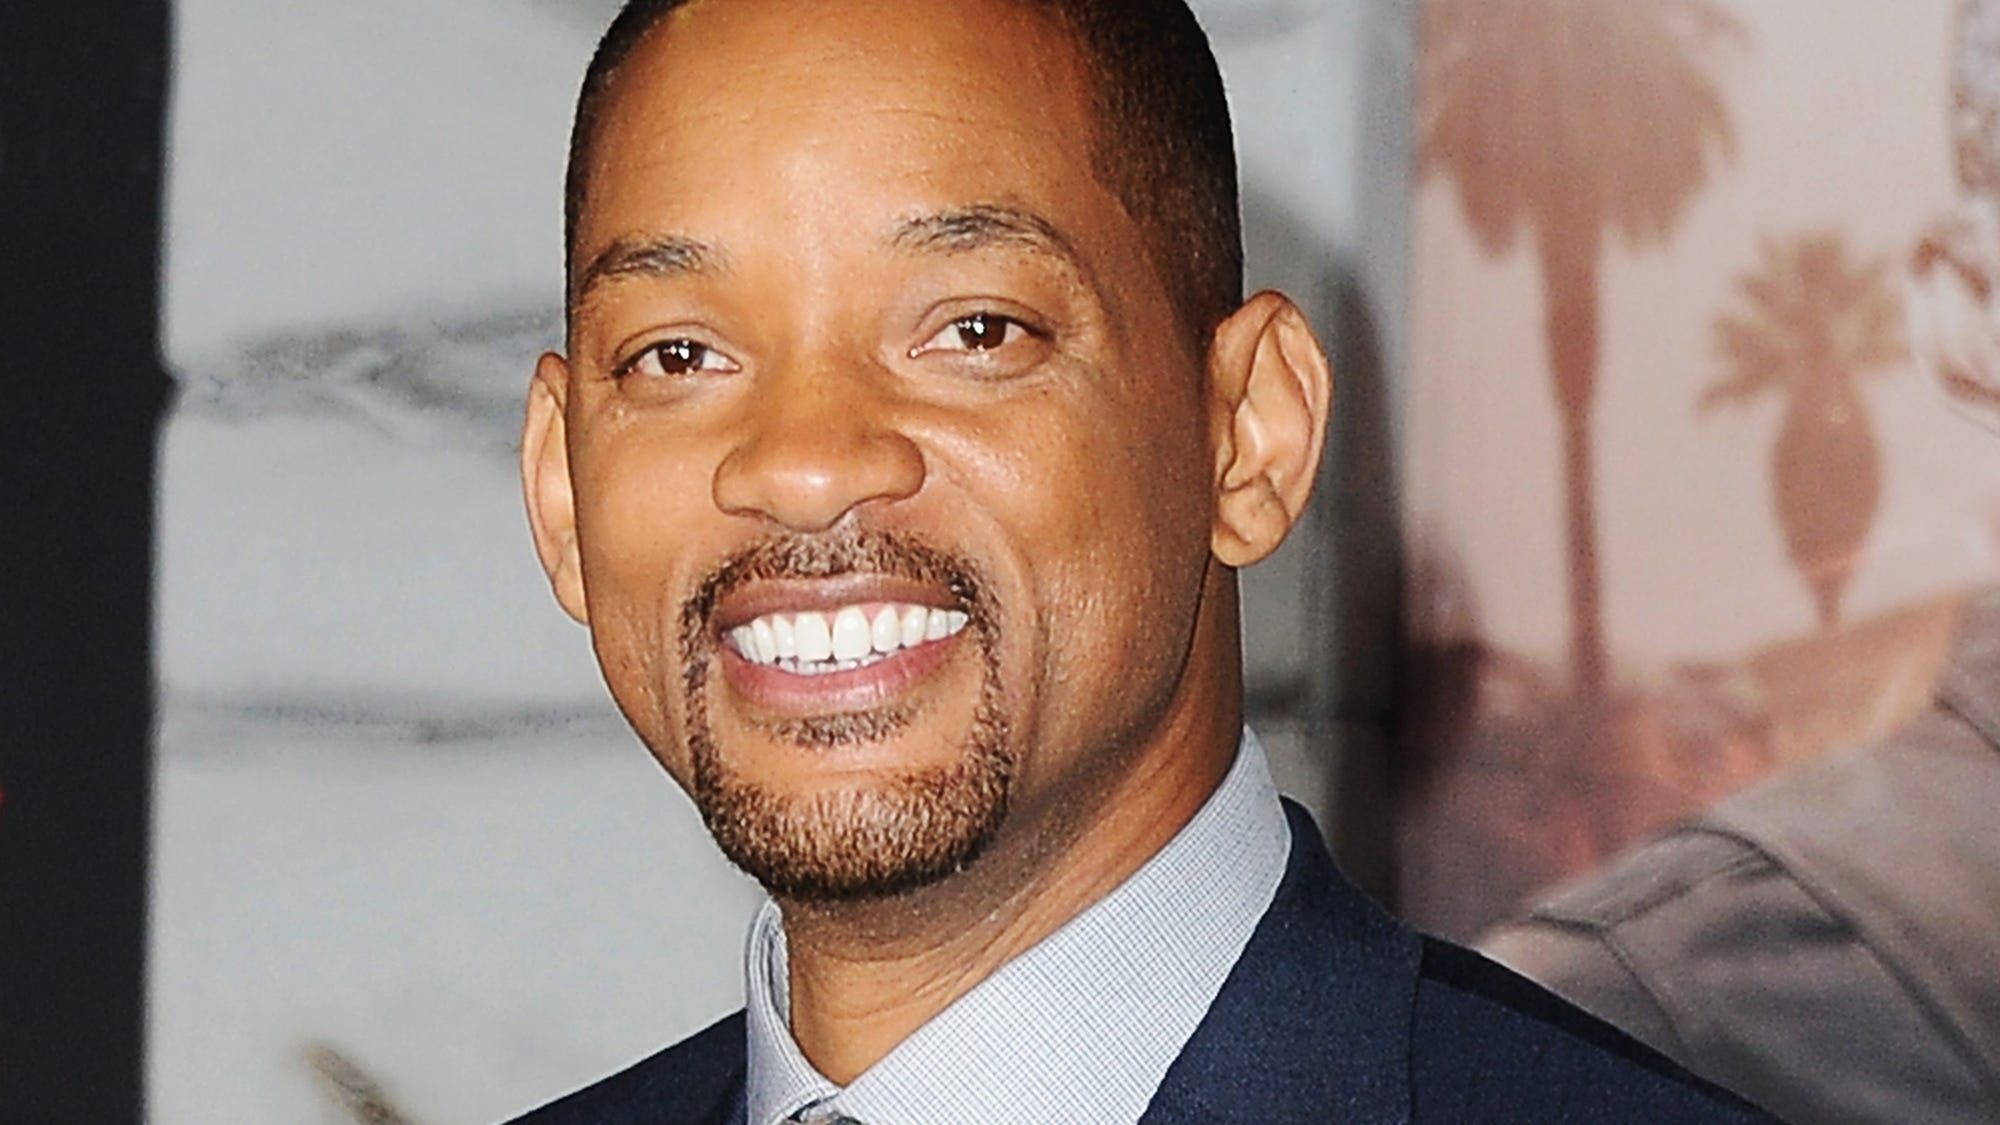 247ce406bae73 Will Smith Instagram Account Posts Are Peak Dad Content